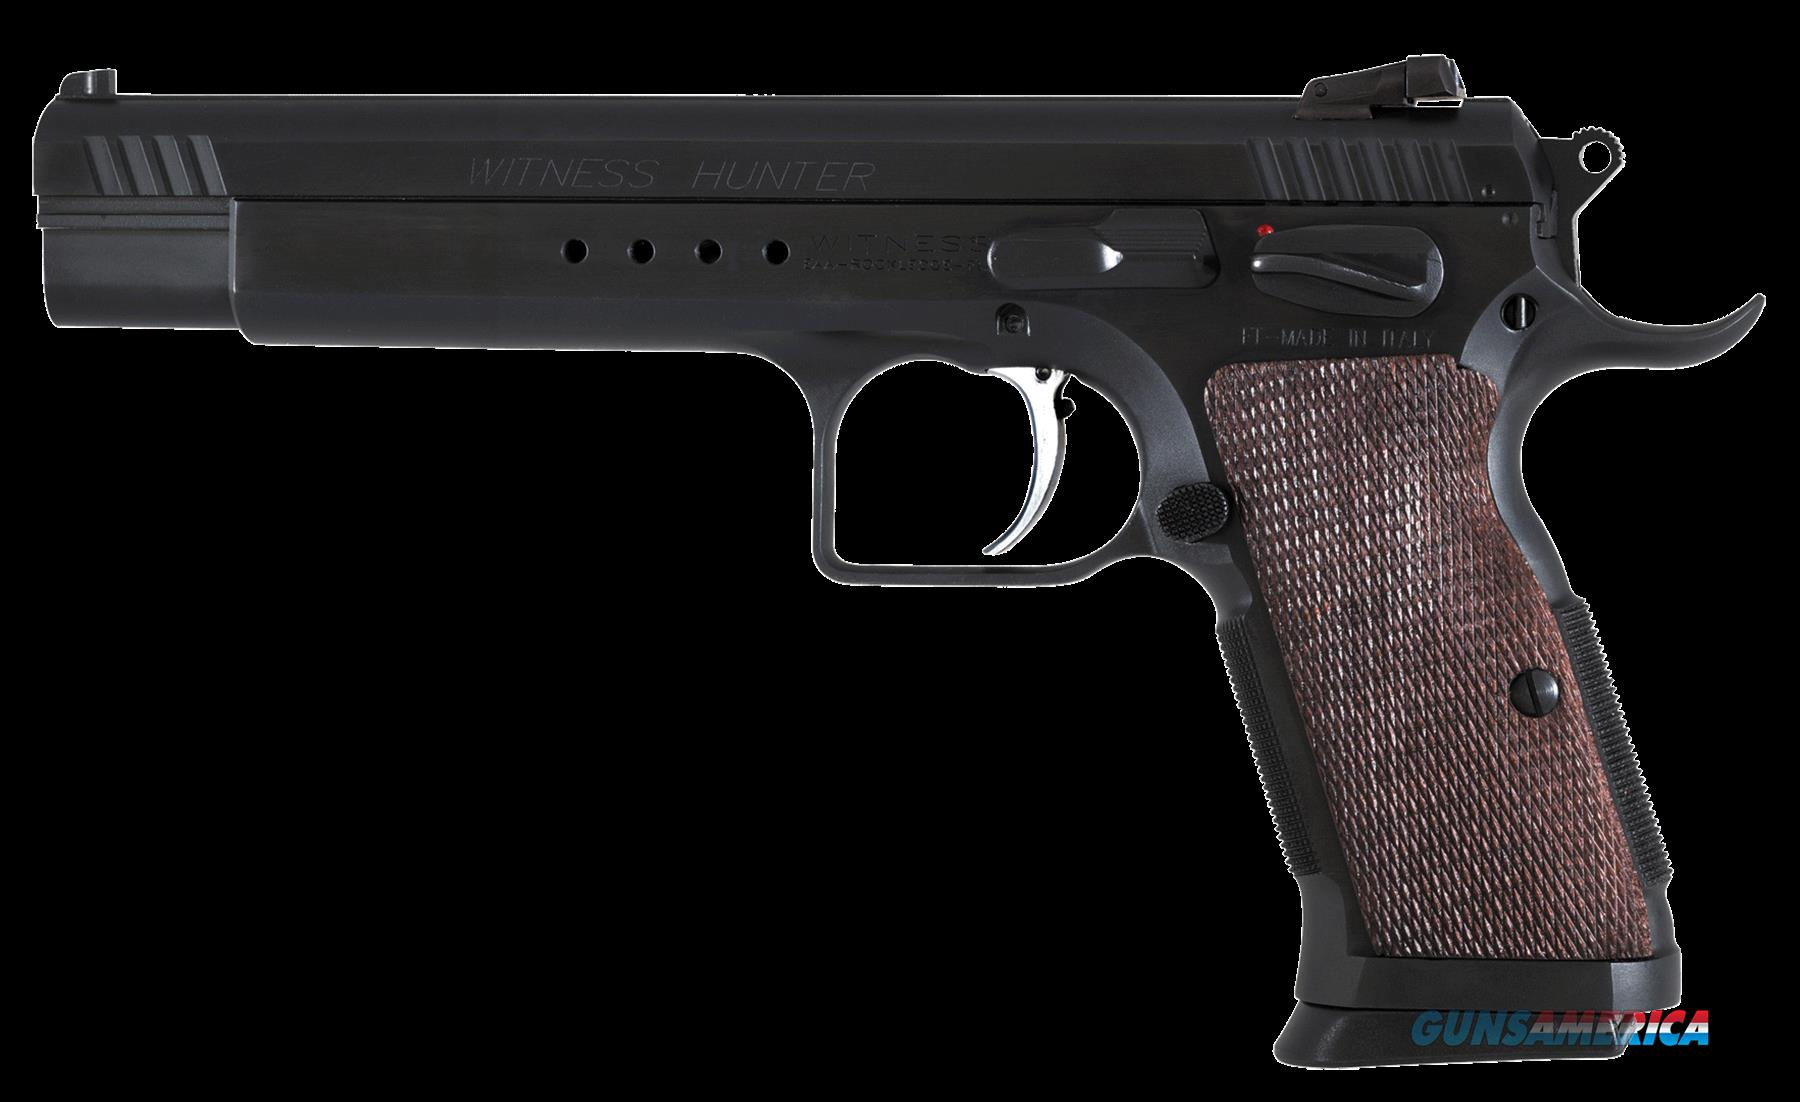 "EAA 600252 Witness Hunter SA 10mm 6"" 14+1 Wood Grip Blued  Guns > Pistols > EAA Pistols > Other"